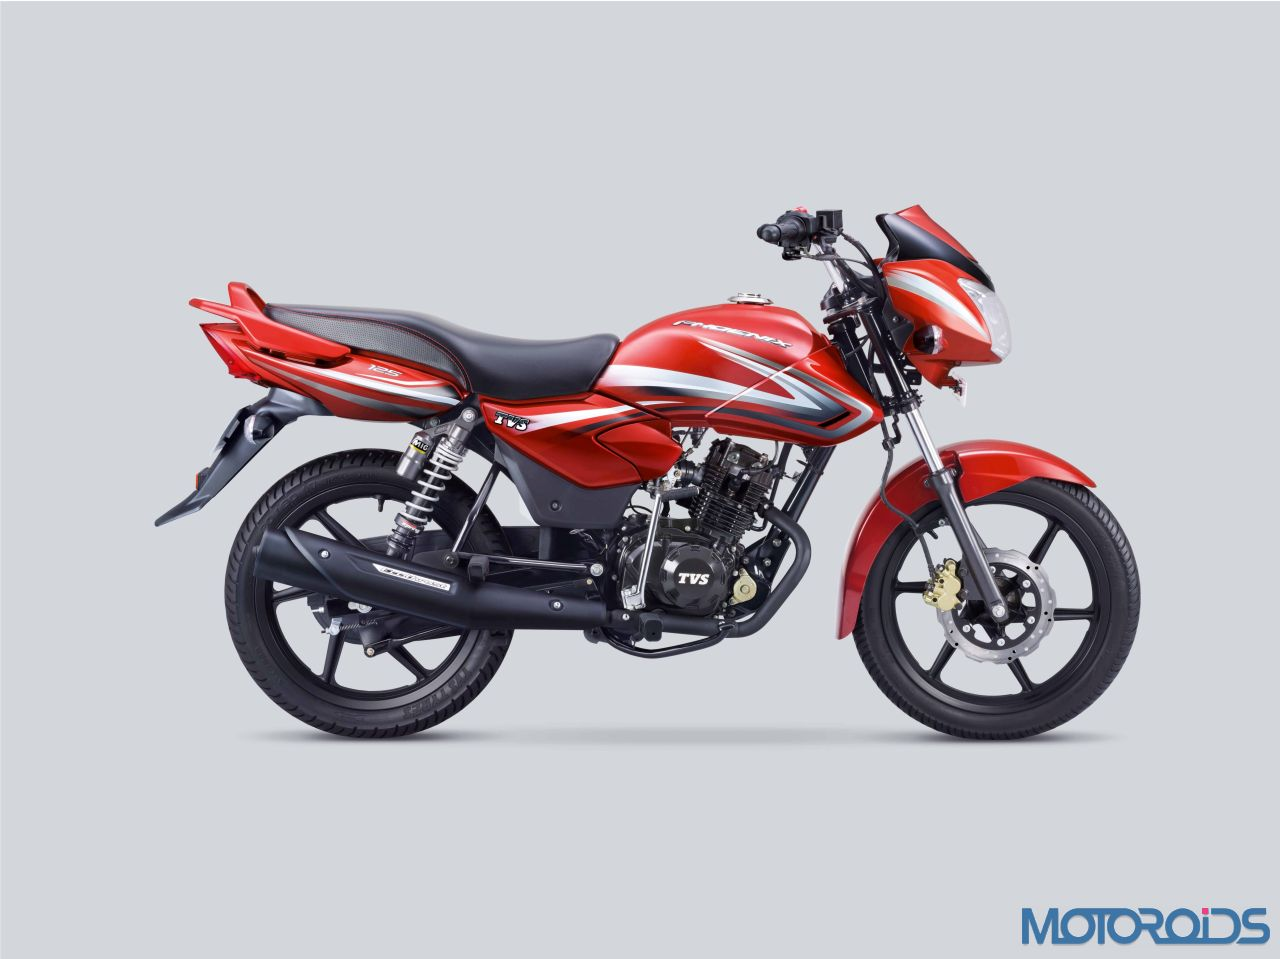 2015 Tvs Phoenix 125 Launched In India At Rs 51 990 Motoroids